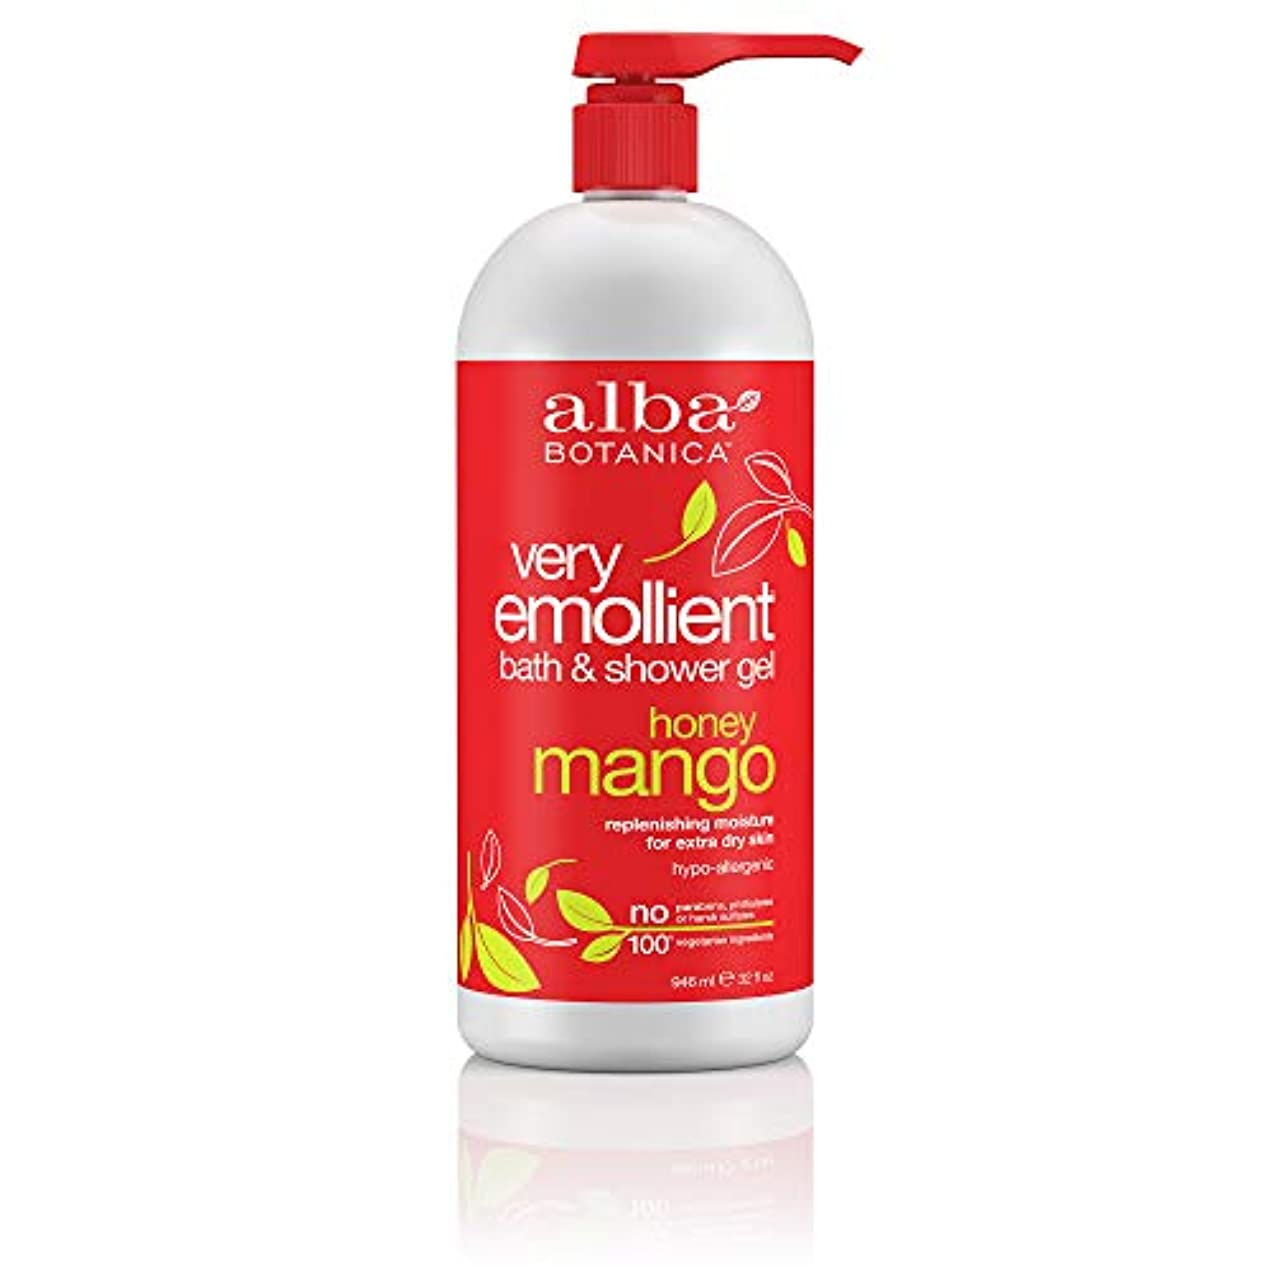 ミシン化学下手Alba Botanica, Natural Very Emollient Bath & Shower Gel, Honey Mango, 32 fl oz (946 ml)